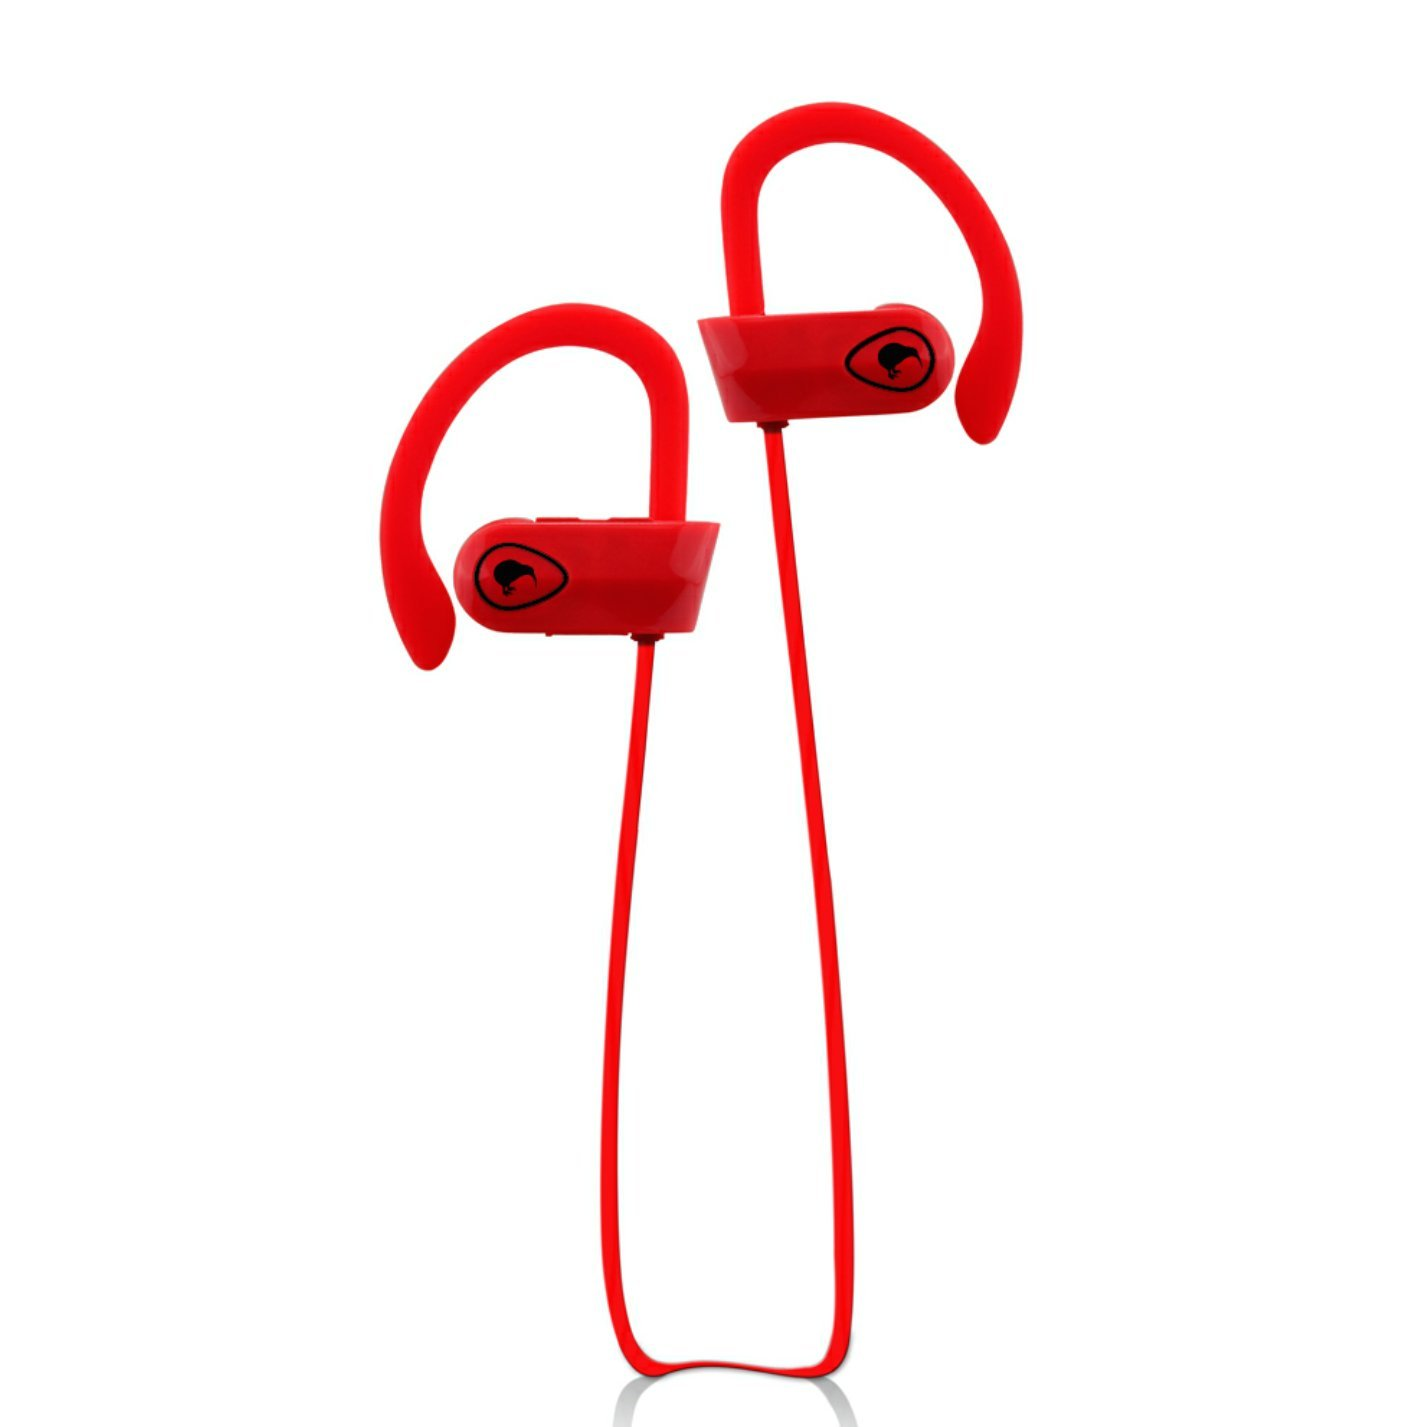 Auriculares Bluetooth con Mic By Kiwi-HD Bluetooth Earbuds - Sweat-proof IPX7 A Prueba de Agua (Red/Red)